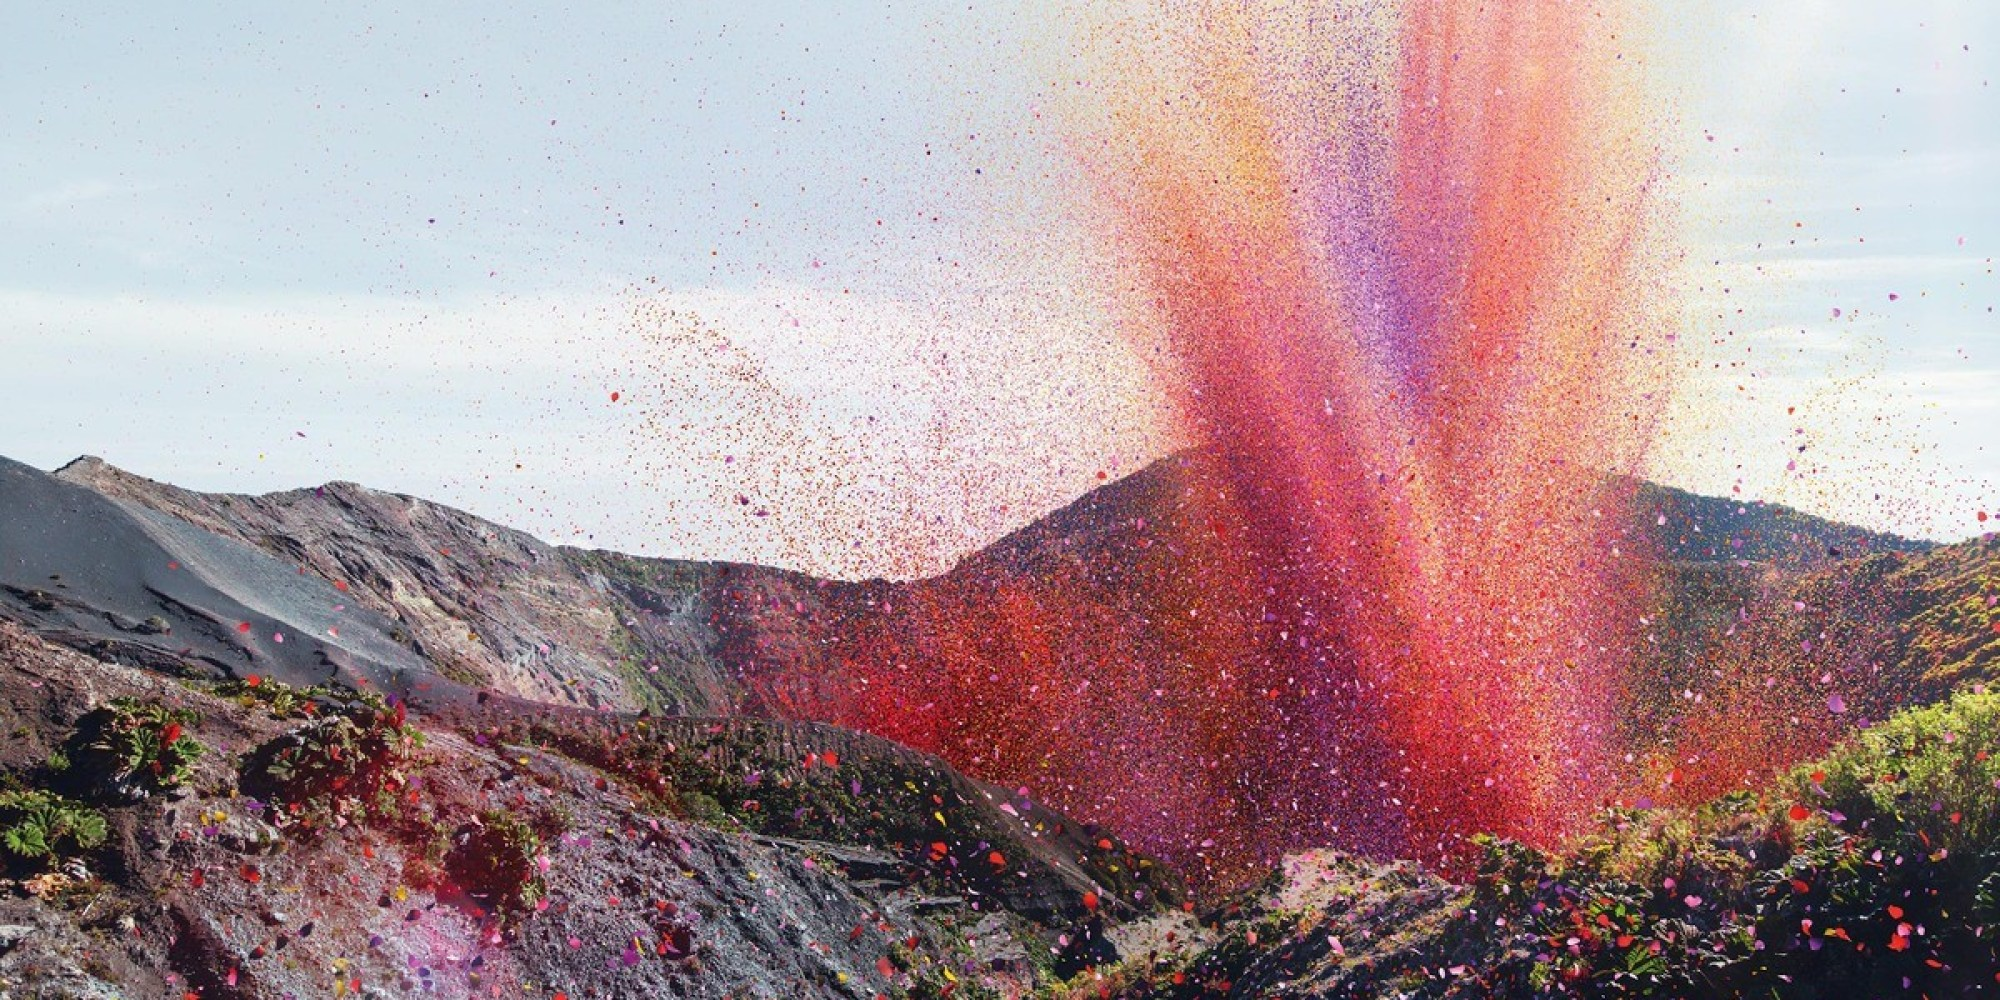 Flower Petals Explode Like A Volcano Over Town In Costa Rica PHOTOS